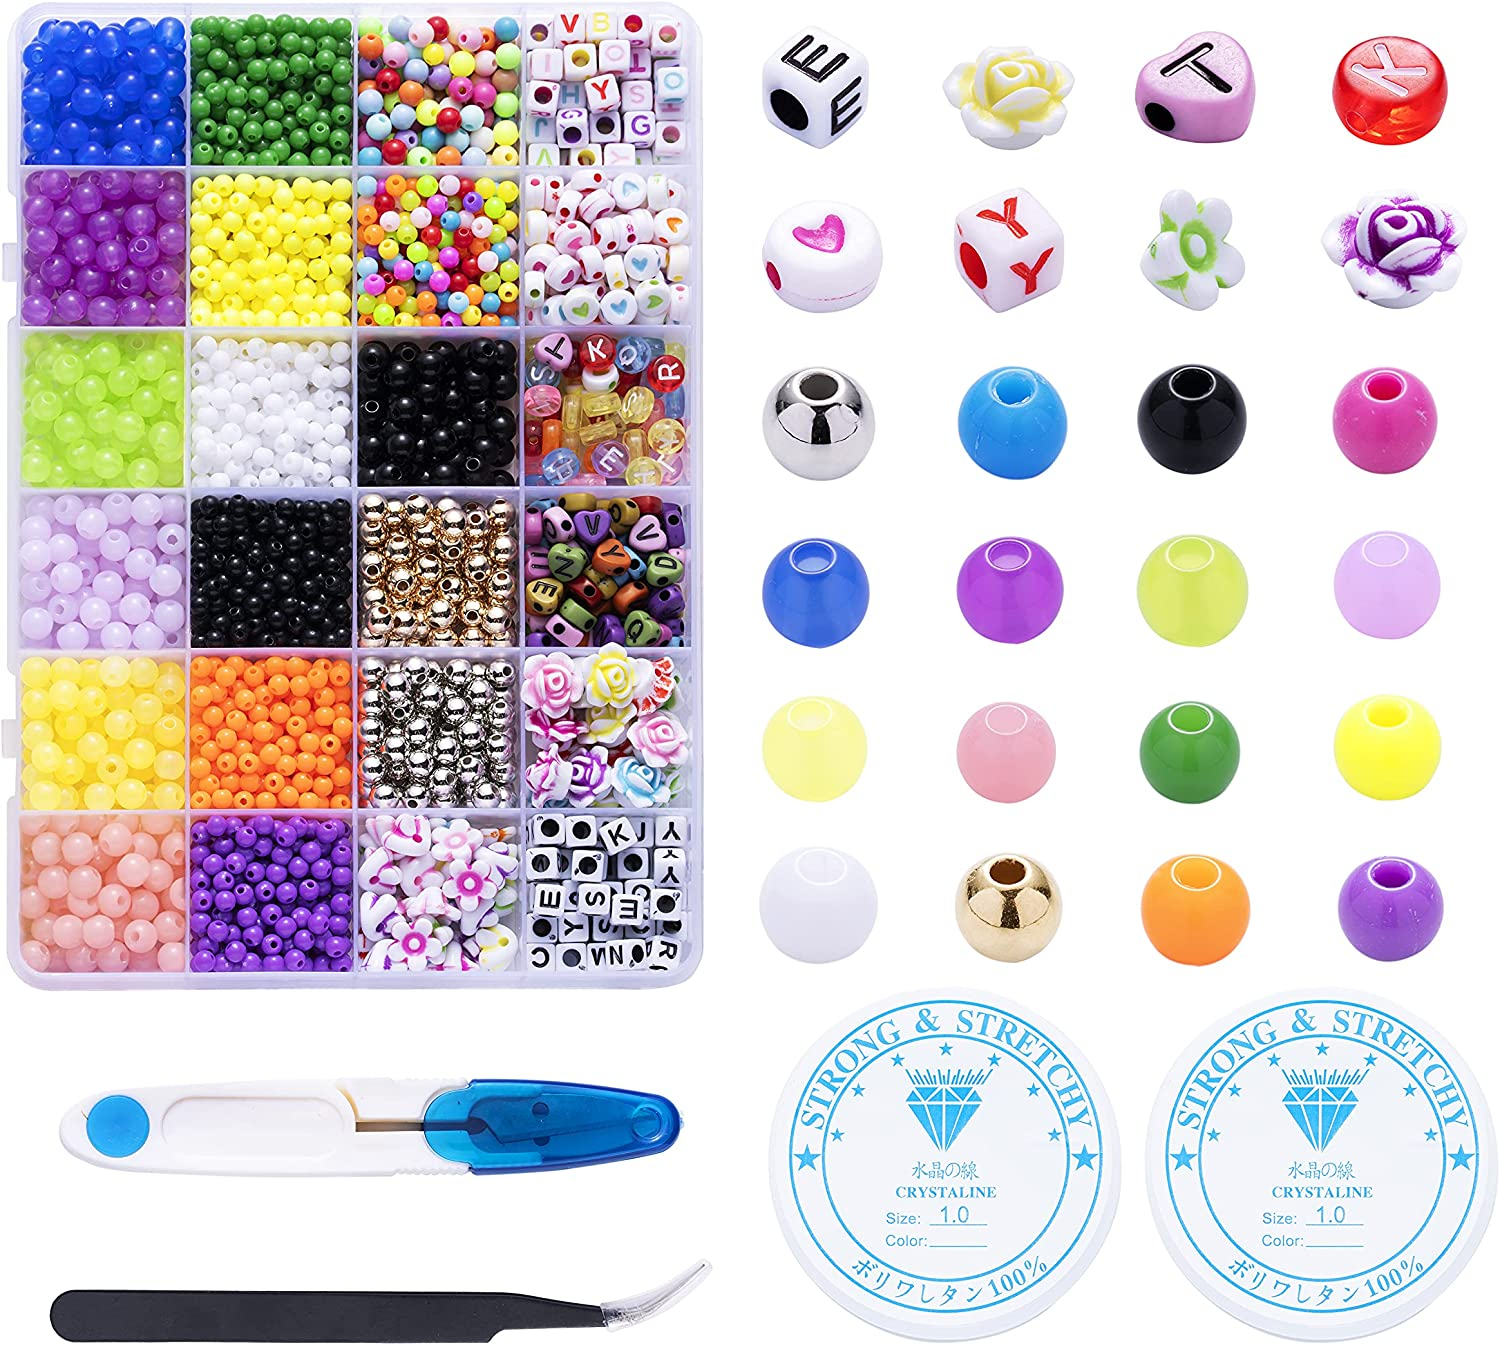 Spring new work Houda 3600PCS Bracelet Necklace Beads for Kit 4mm Max 72% OFF Making Jewelry